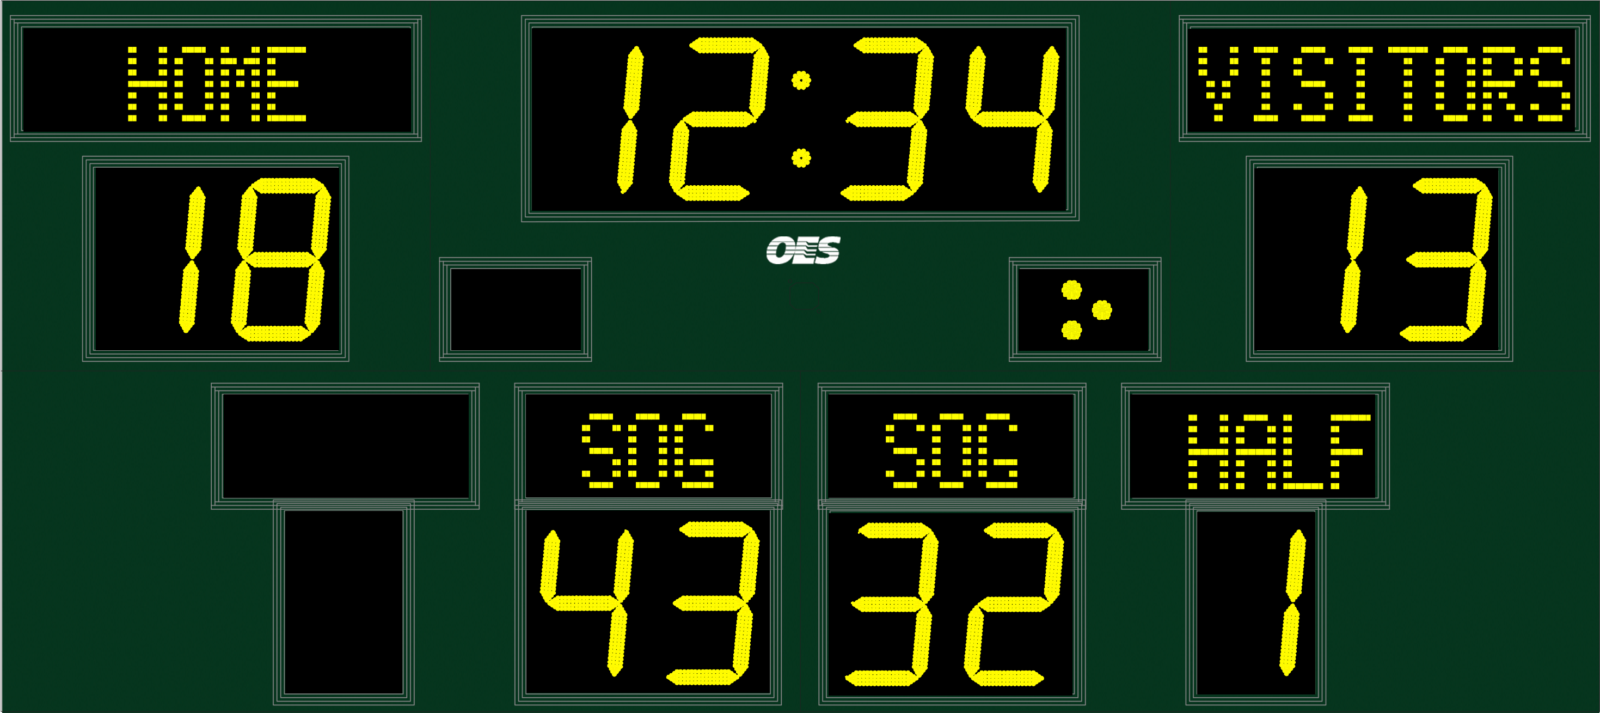 green scoreboard with yellow text